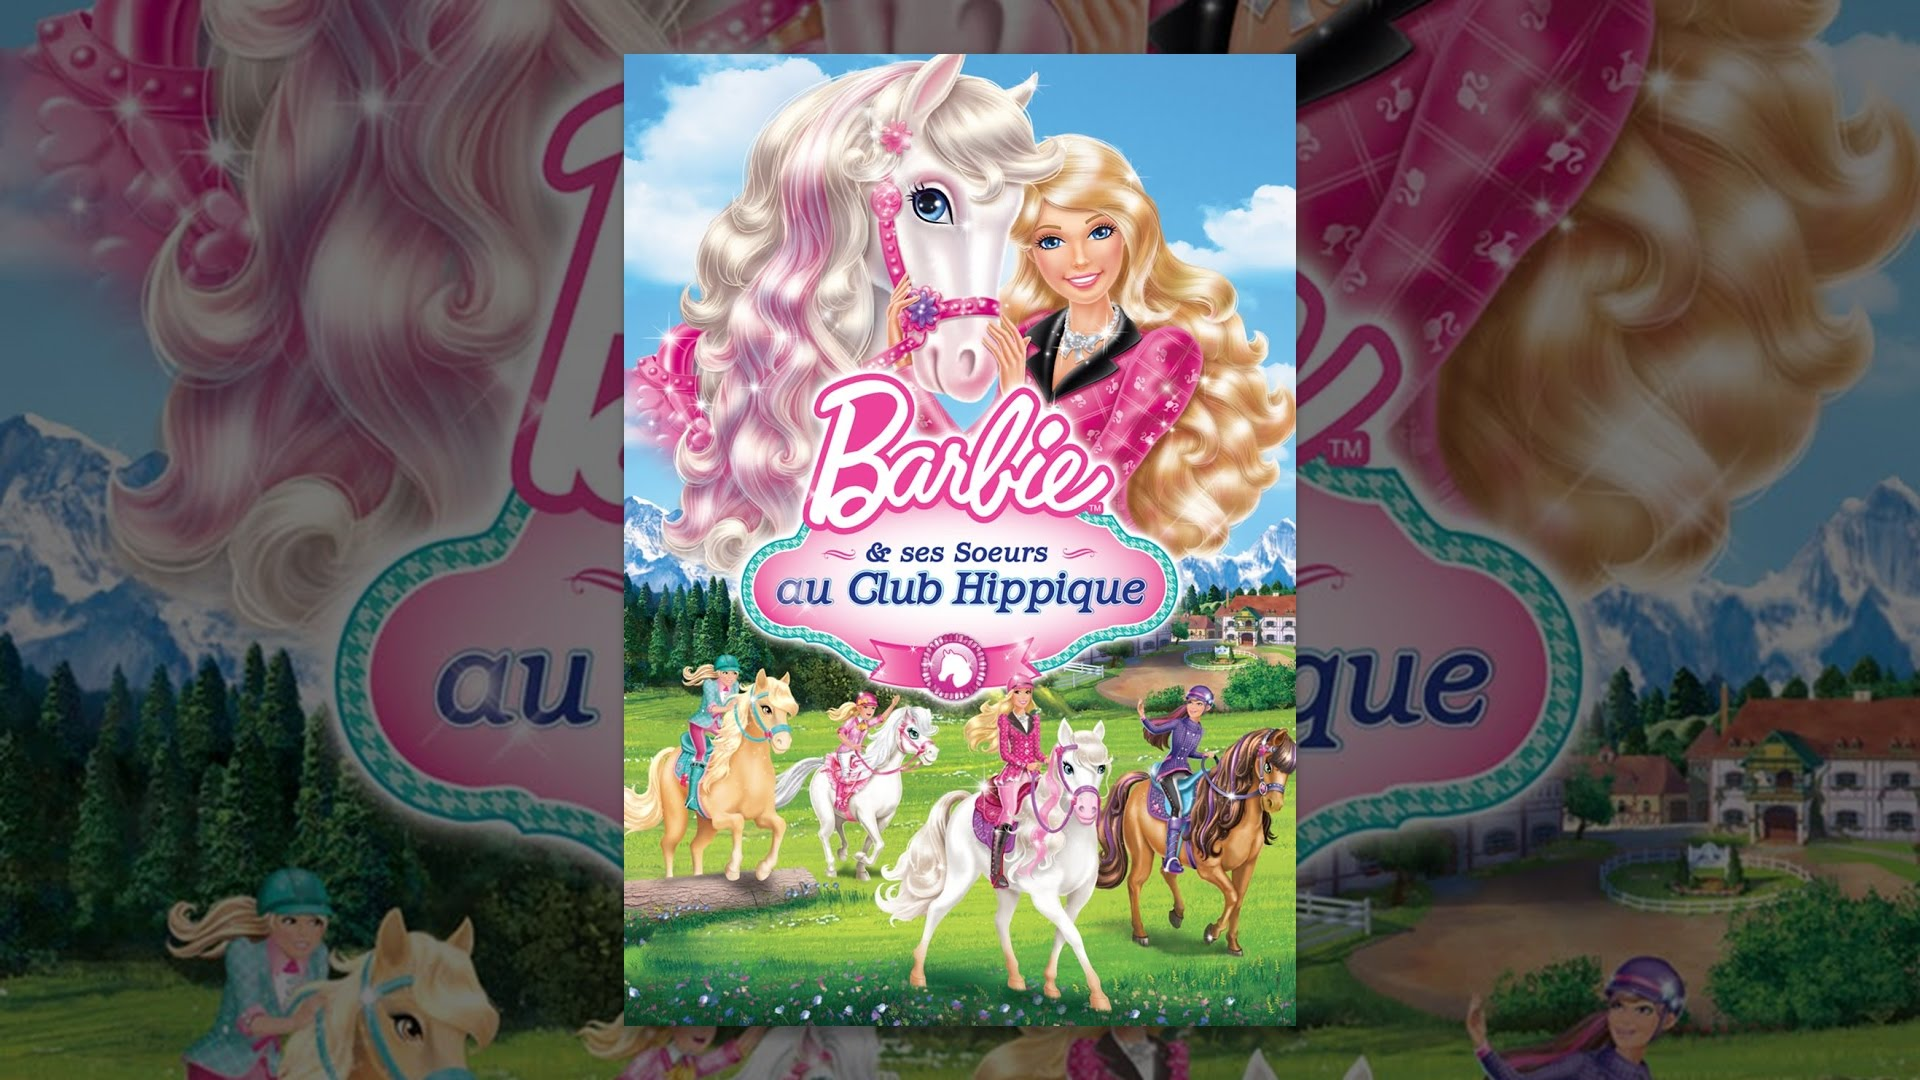 Barbie ses soeurs au club hippique vf youtube - Barbie club hippique ...